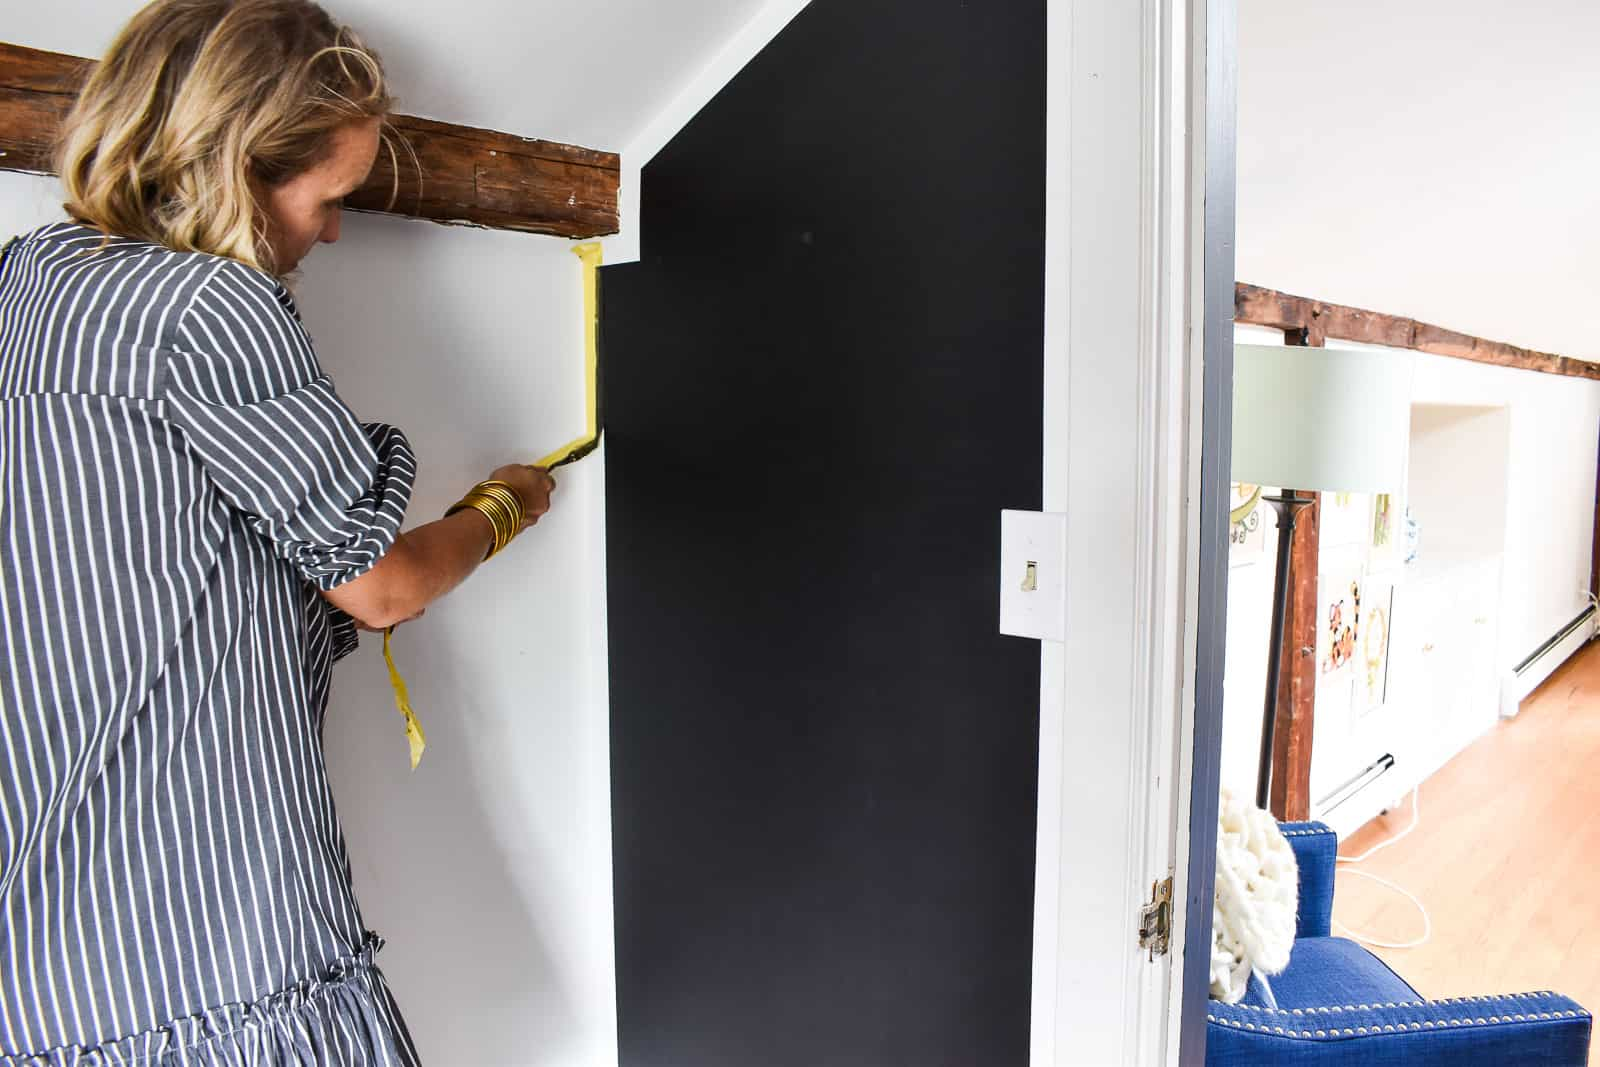 removing the tape on chalkboard wall